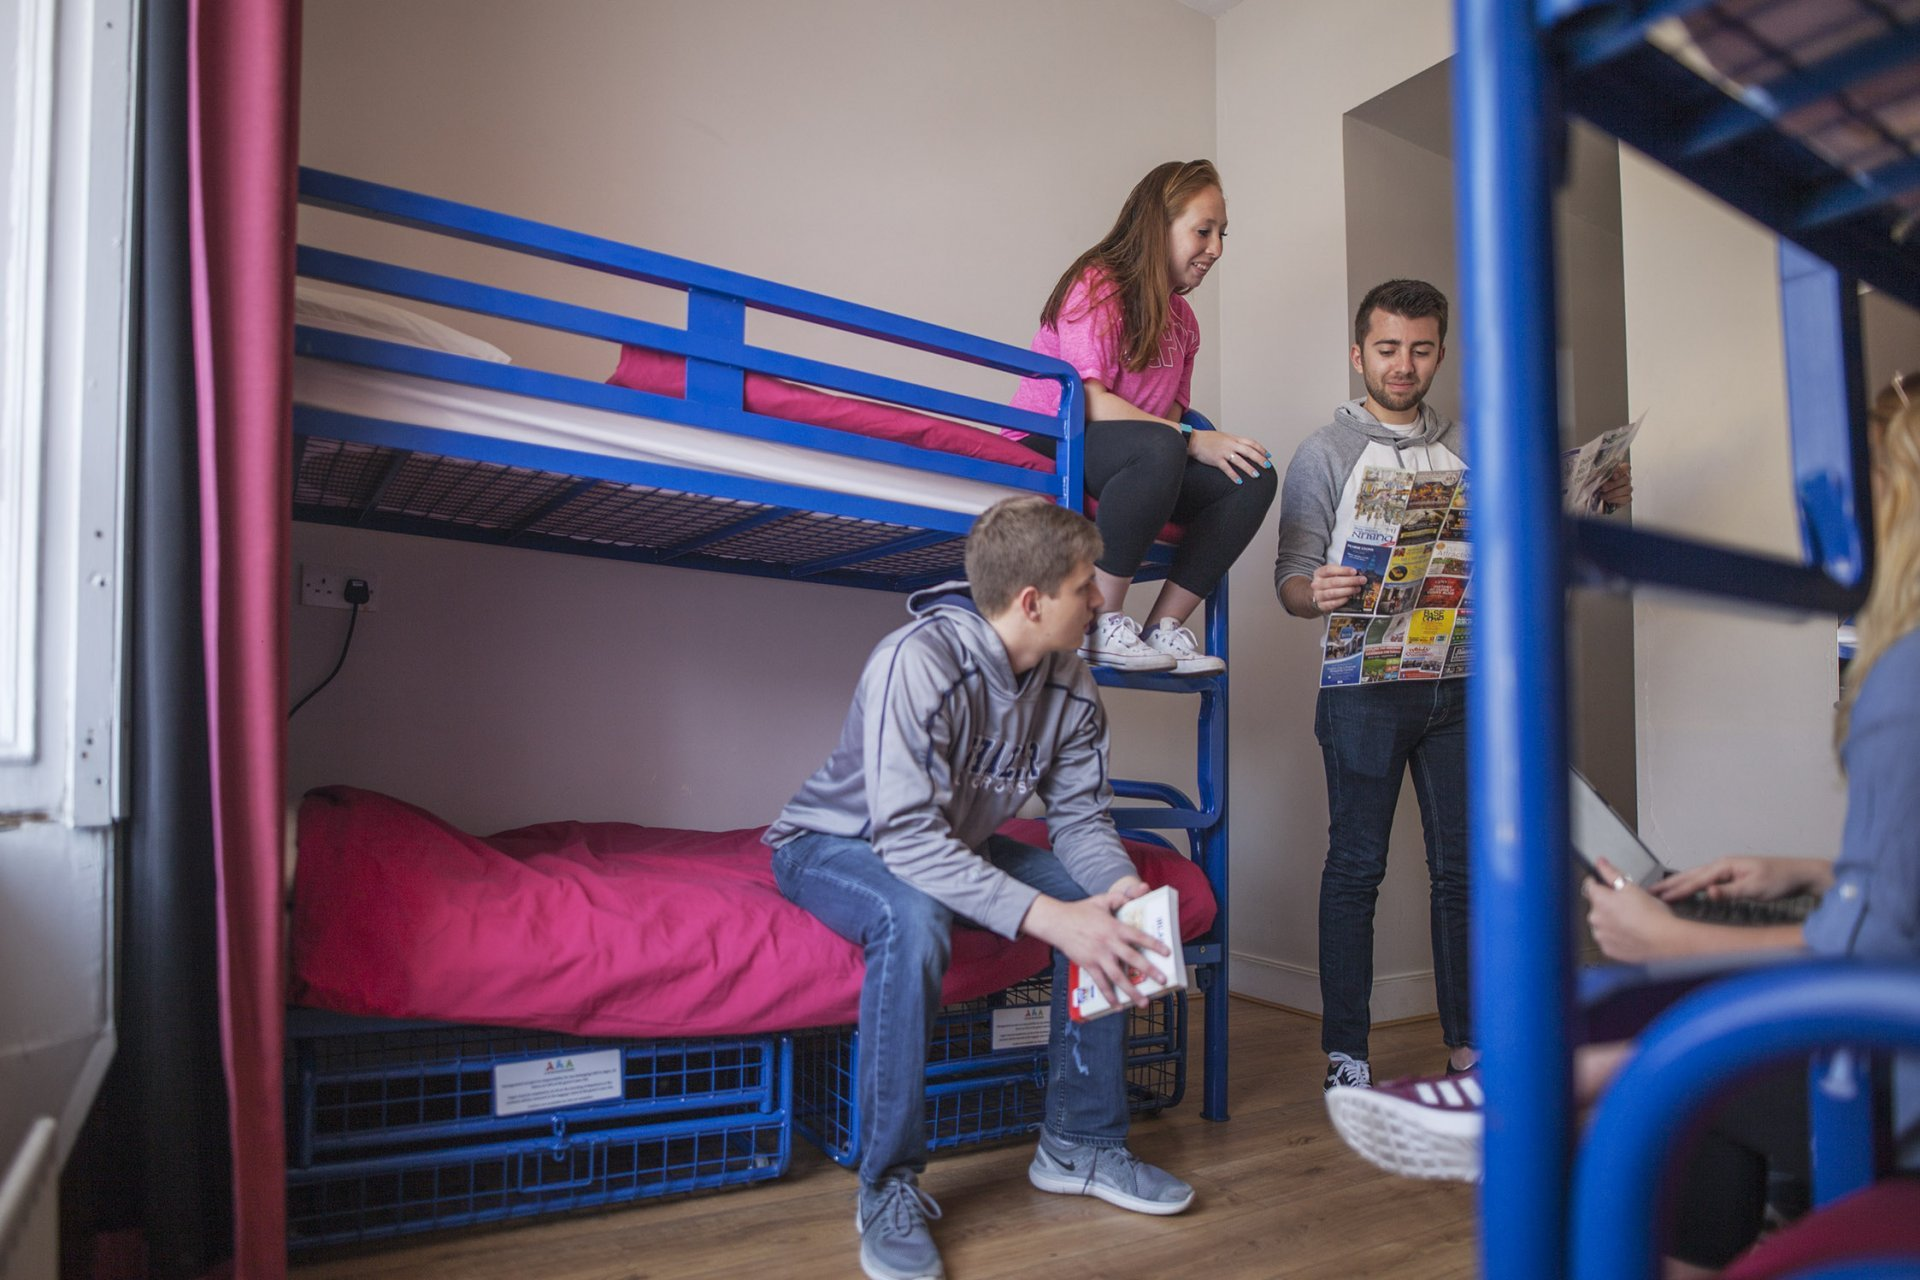 Tourists in Double Twin Room Hostel Accommodation Bunk Beds